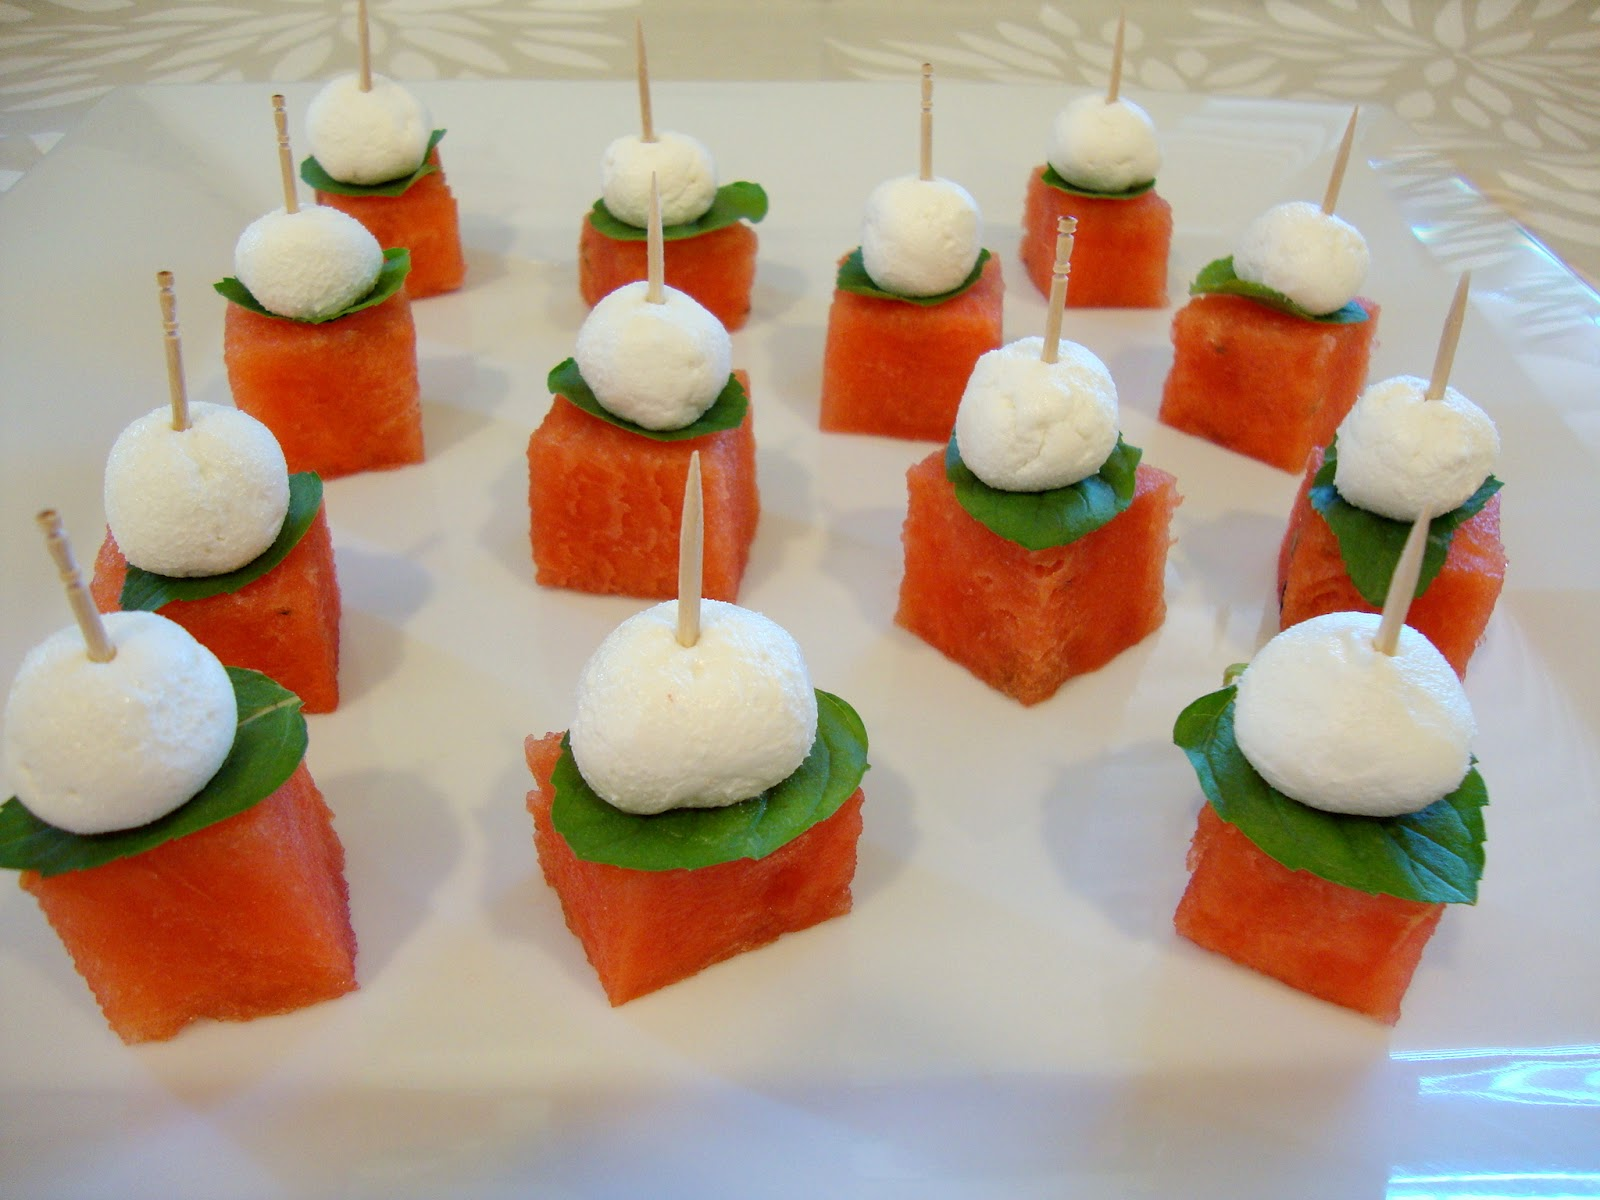 ... Indulgence: Watermelon and Goat Cheese Bites for #SundaySupper